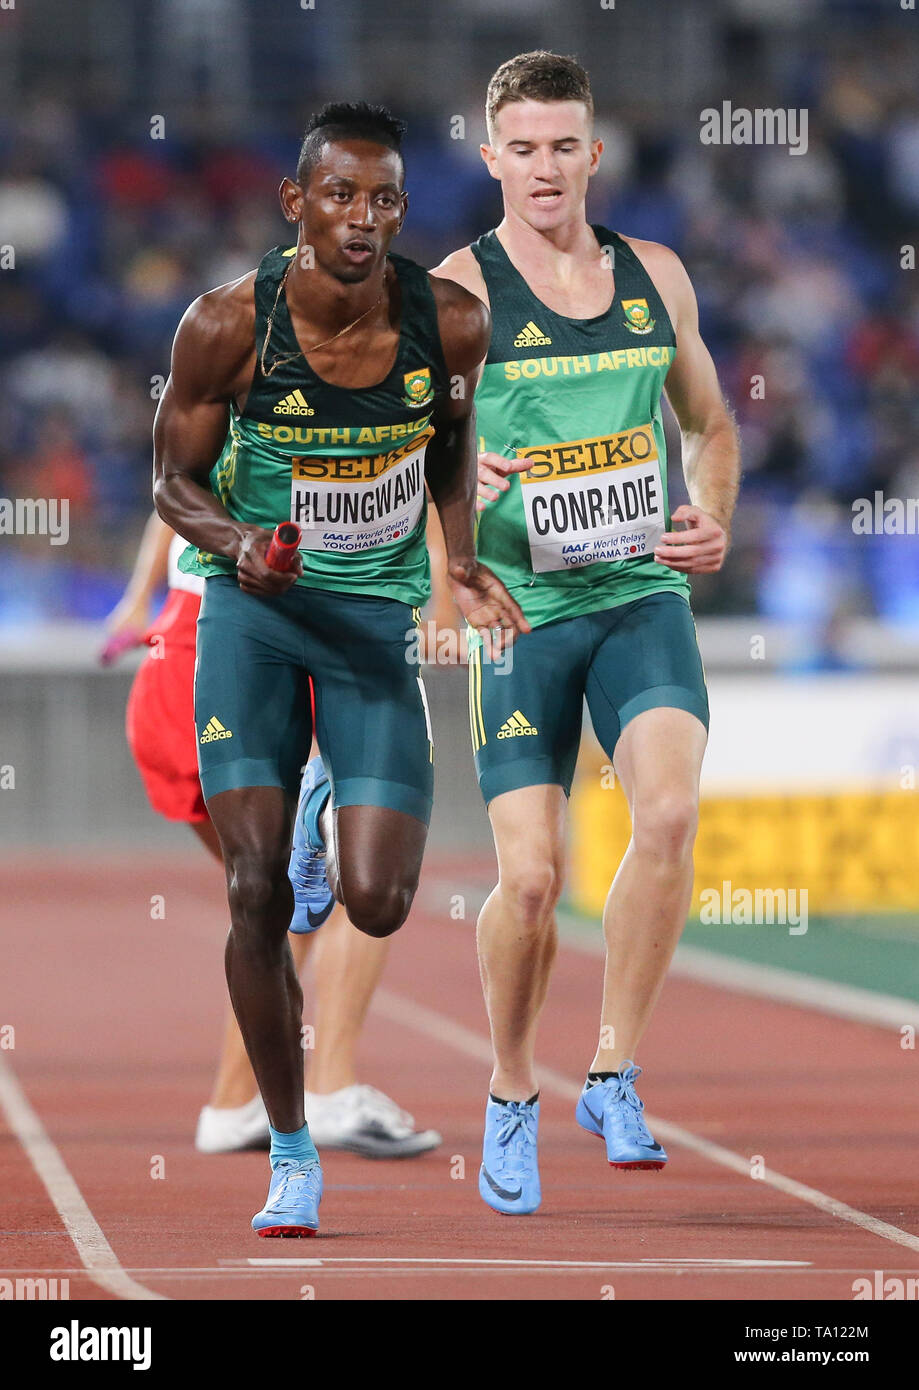 YOKOHAMA, JAPAN - MAY 11: Ashley Hlungwani receives the baton from Pieter Conradie in the mens 4x400m relay during day 1 of the IAAF World Relays at Nissan Stadium on May 11, 2019 in Yokohama, Japan. (Photo by Roger Sedres/Gallo Images) - Stock Image